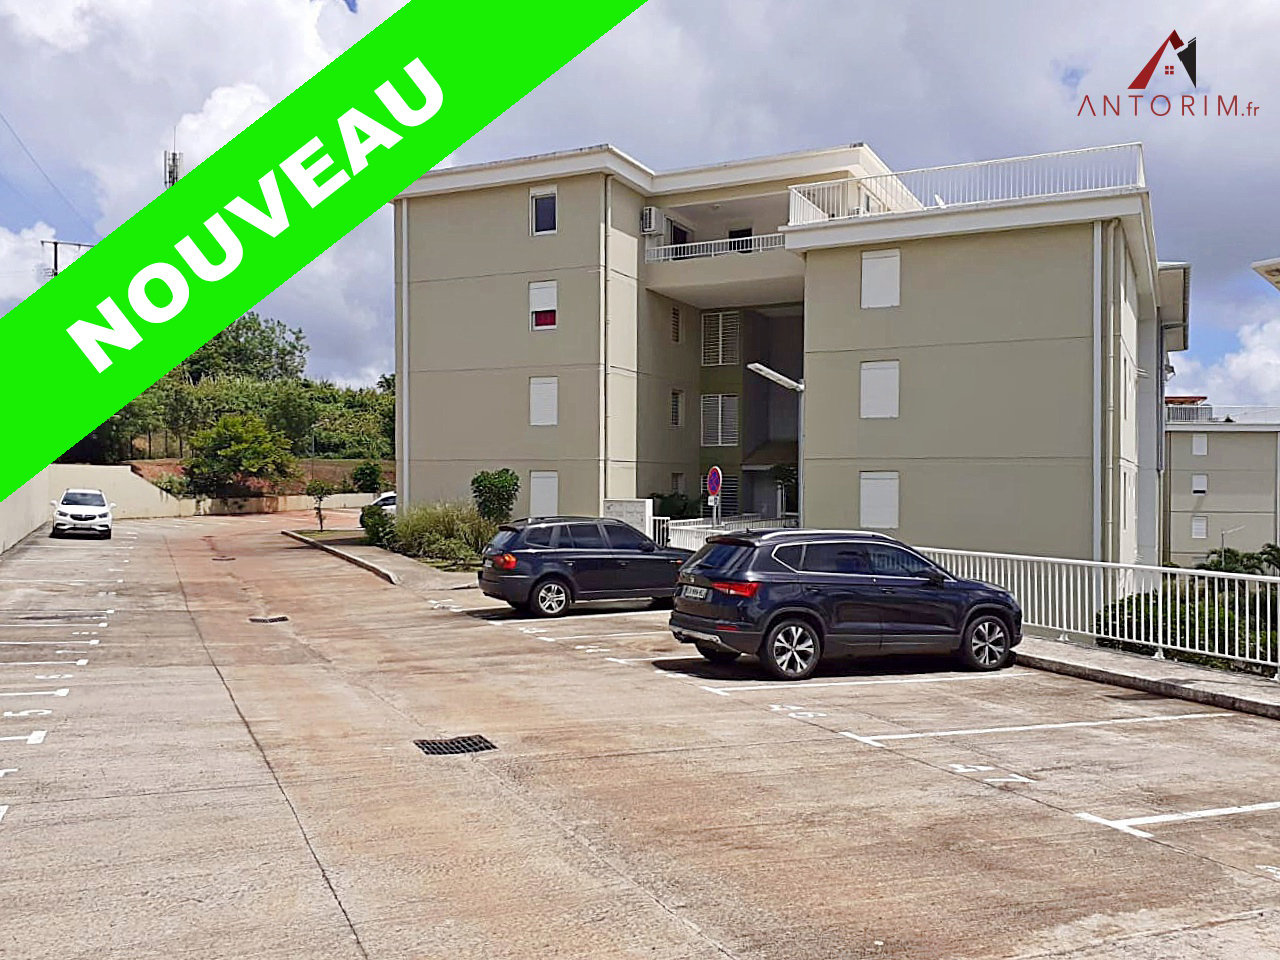 EXCLUSIVITE - SAINT-JOSEPH - Beau T3 - Terrasse - 2 Parkings